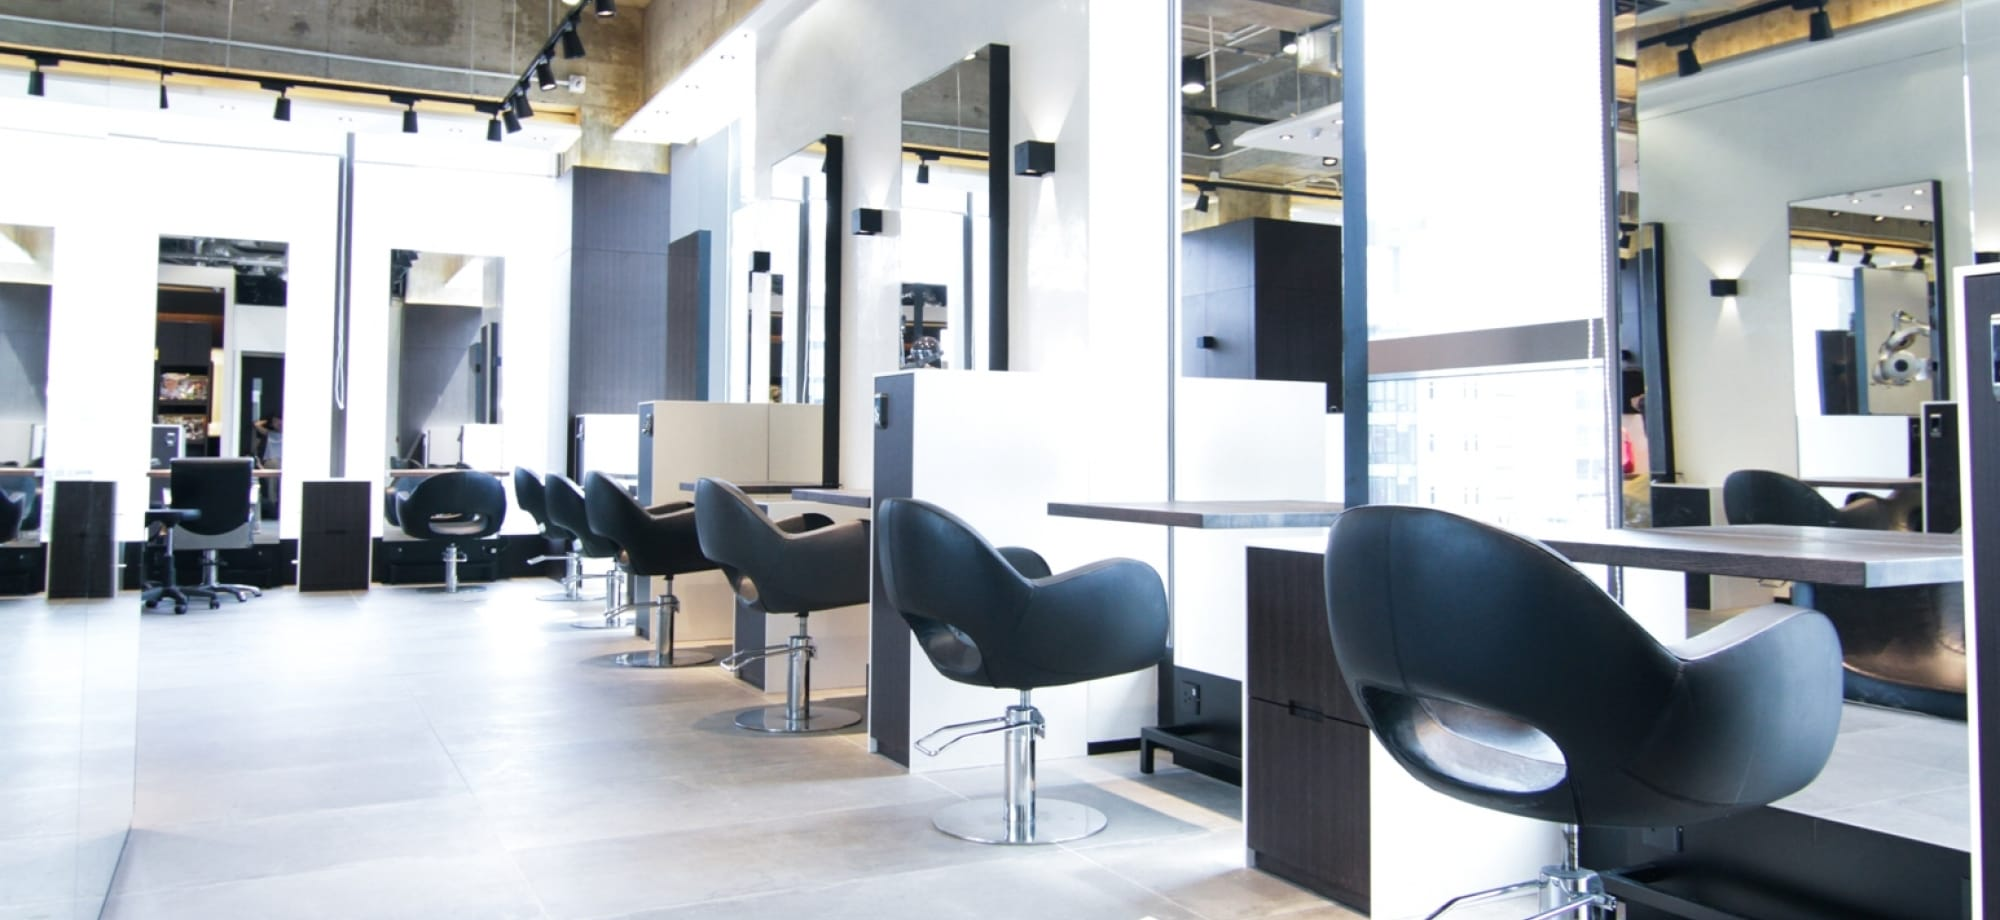 best hair salons in hong kong, best hair dressers in hong kong, where to get haircut in hong kong